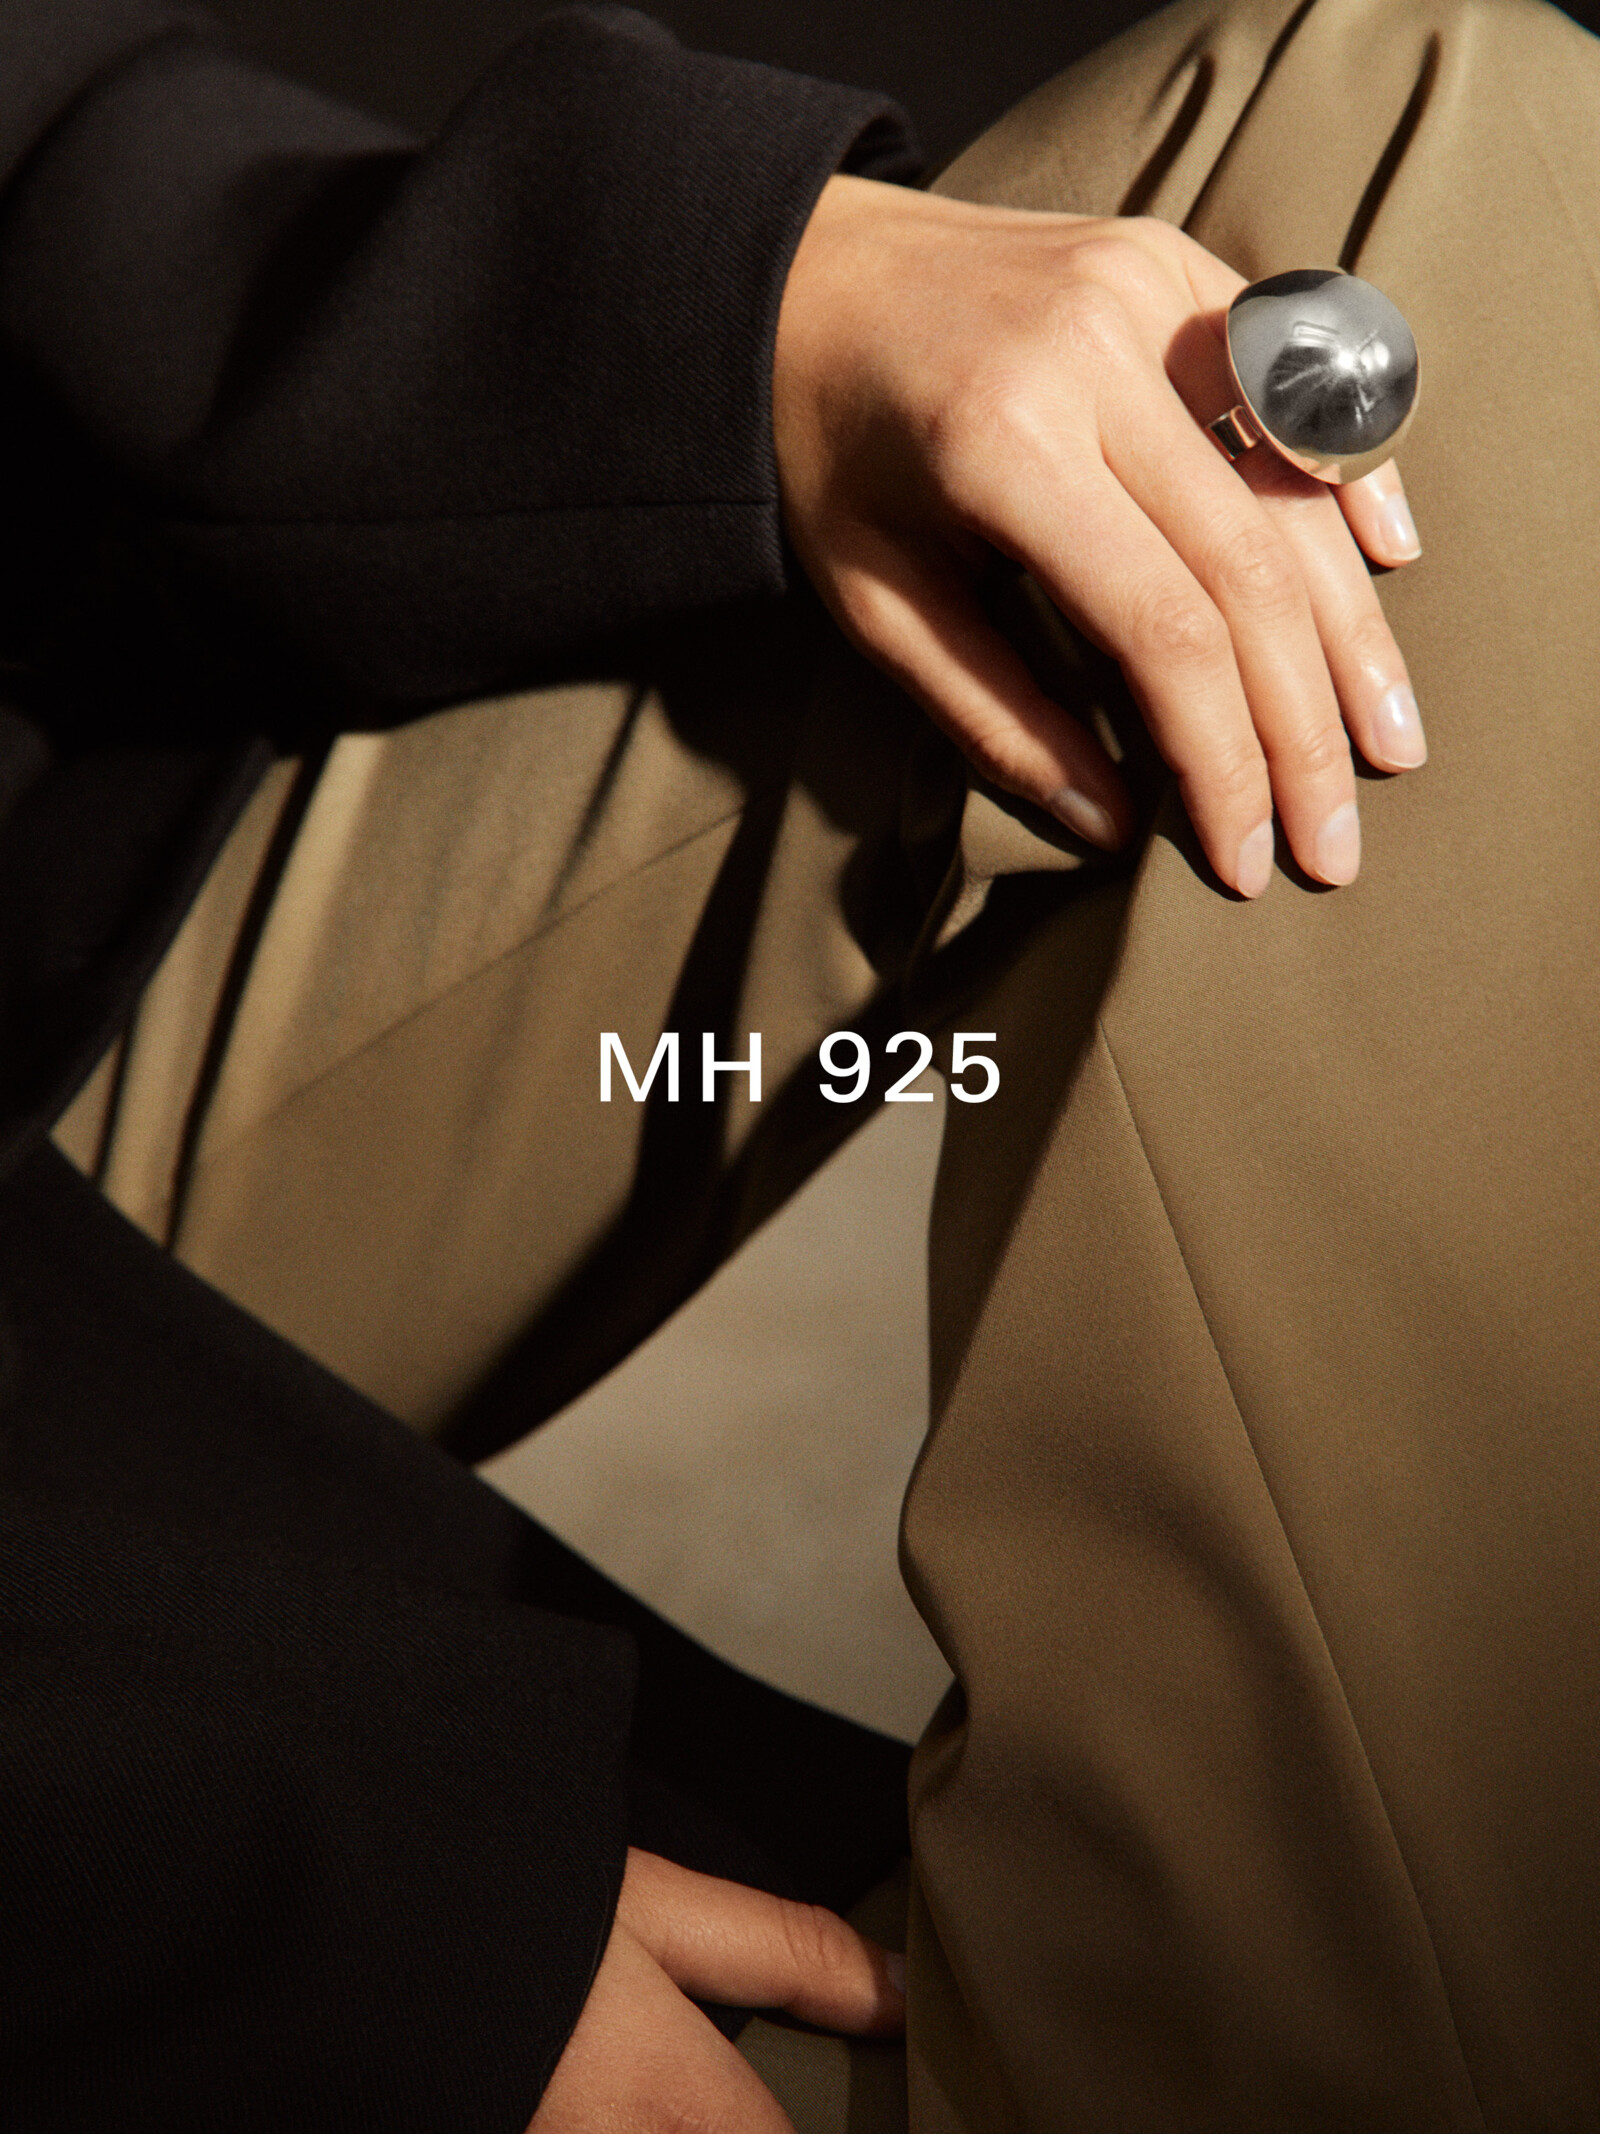 MH 925 images9